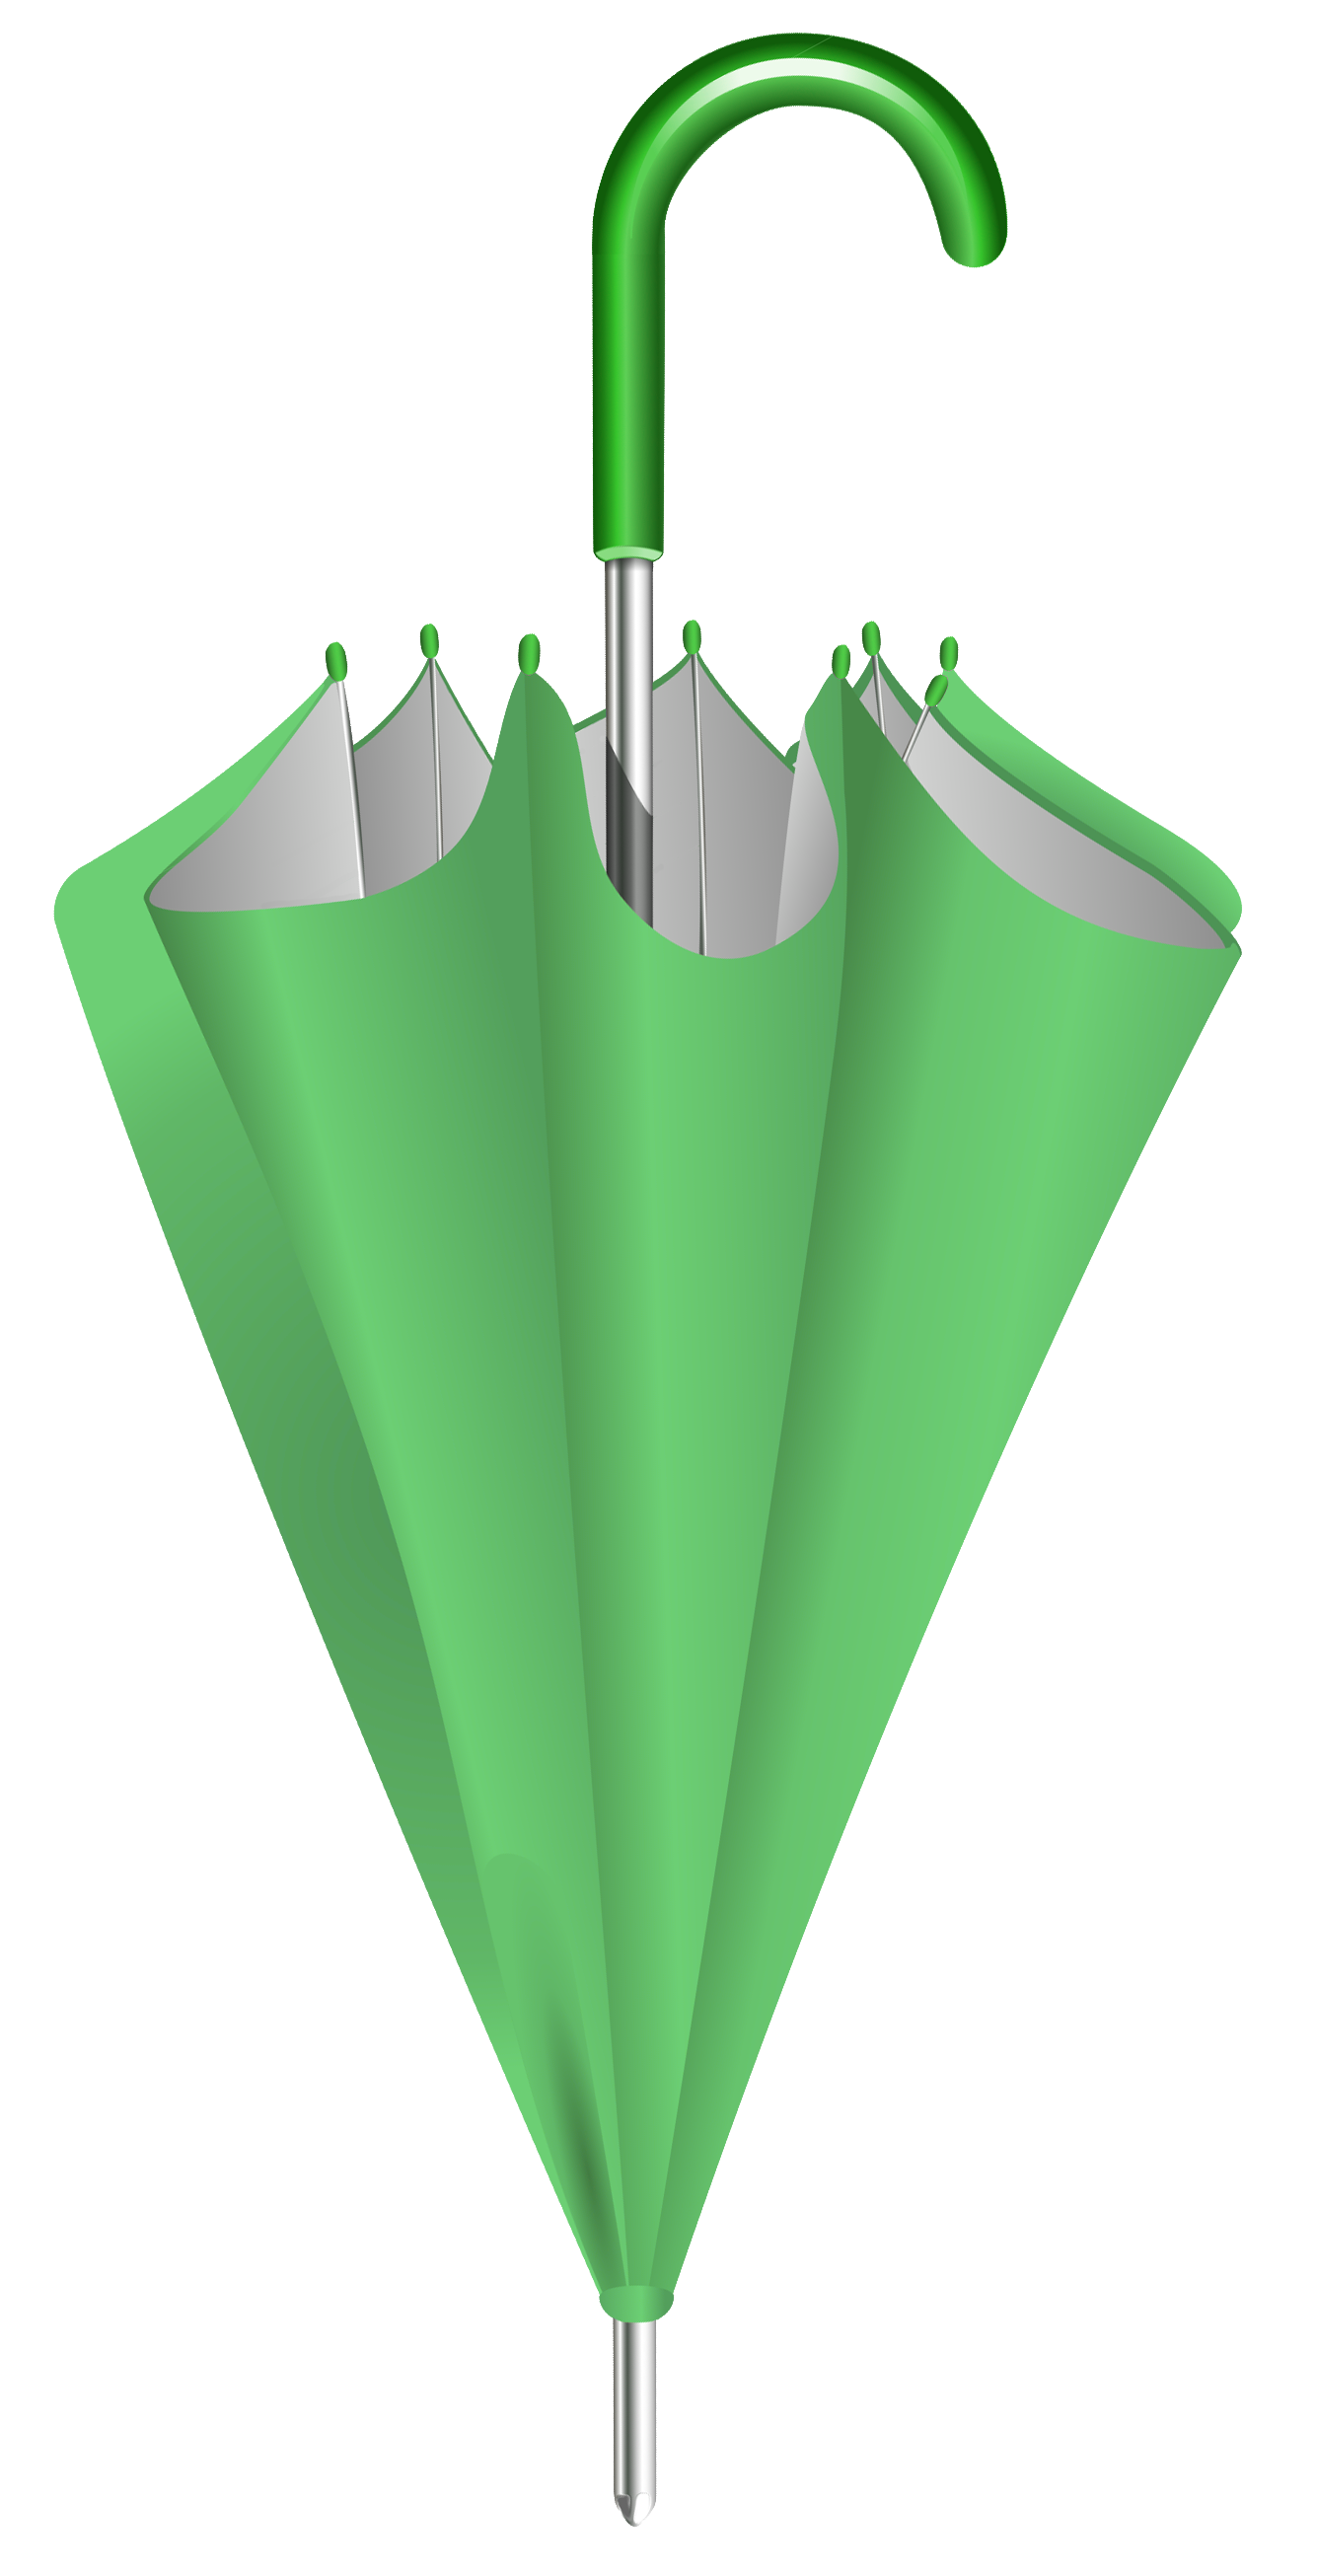 Closed umbrella png. Green clipart image gallery